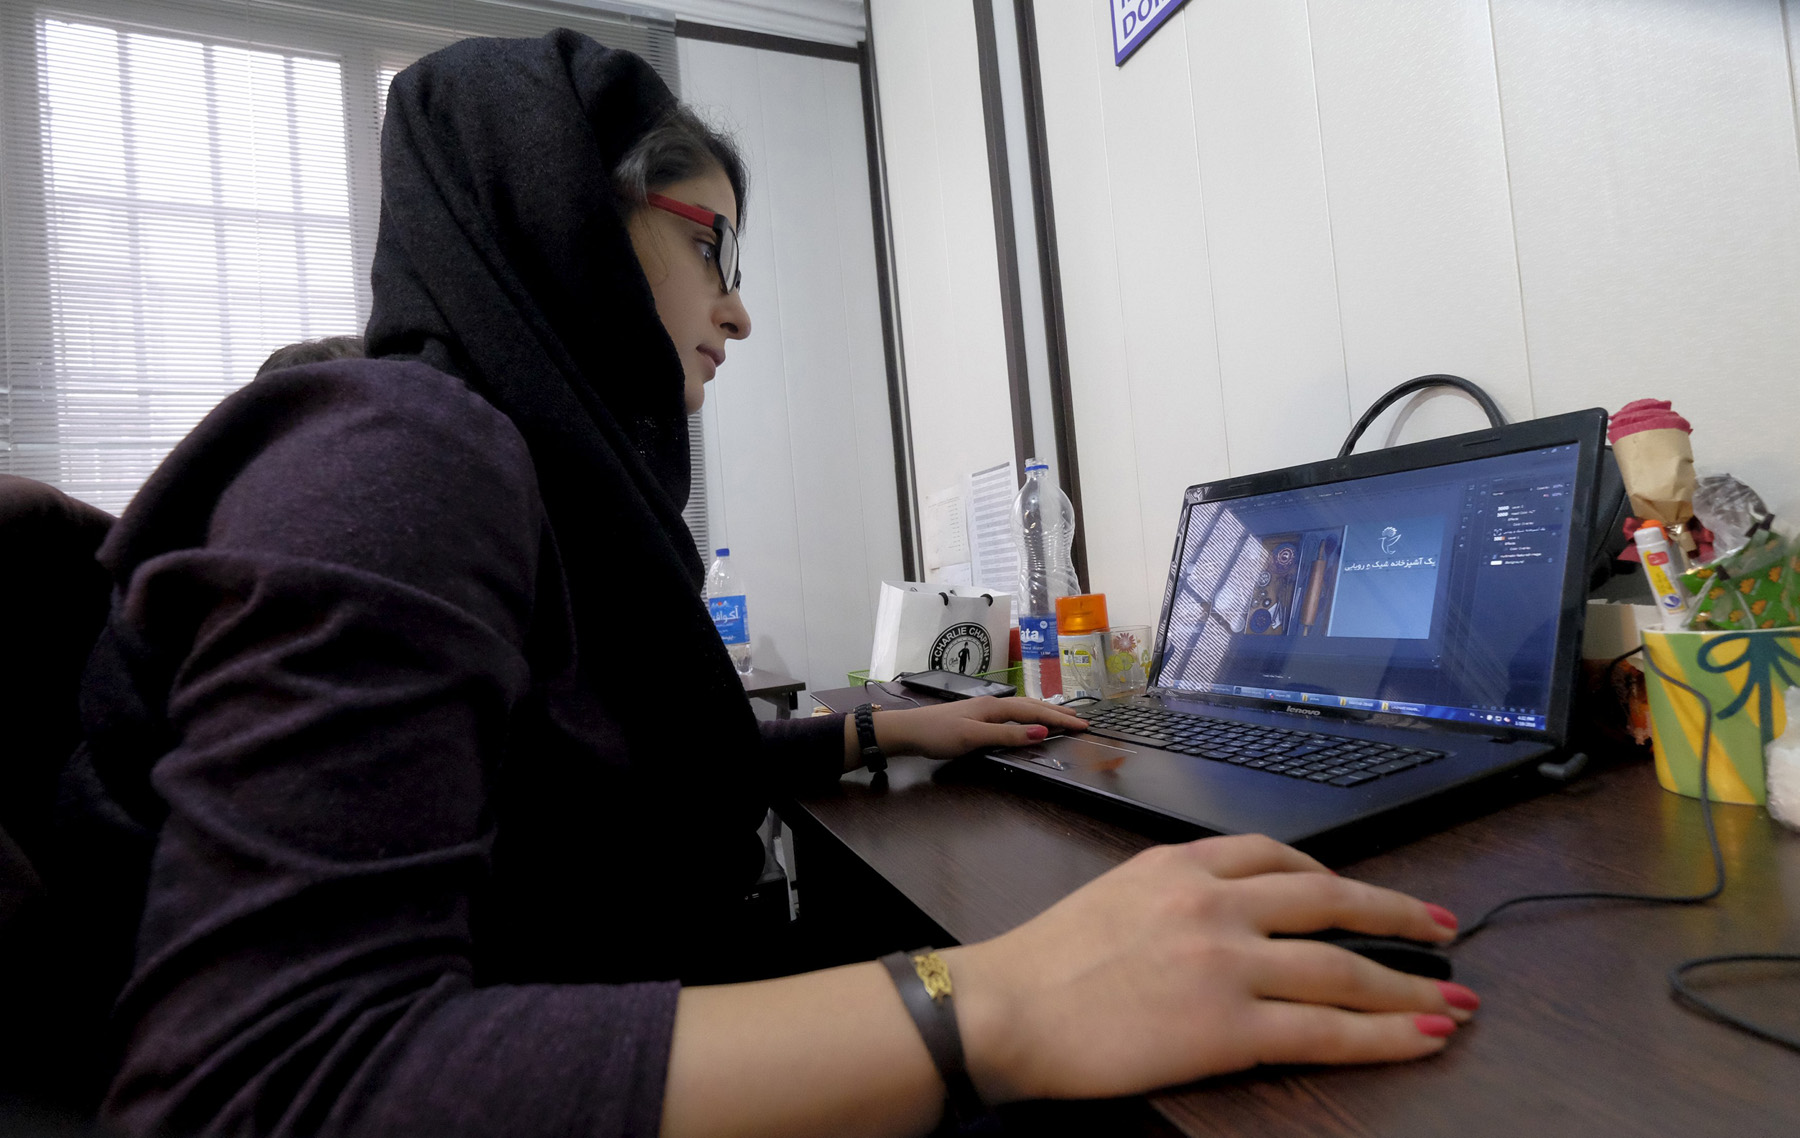 An Iranian woman works on her laptop in Tehran. (Reuters)